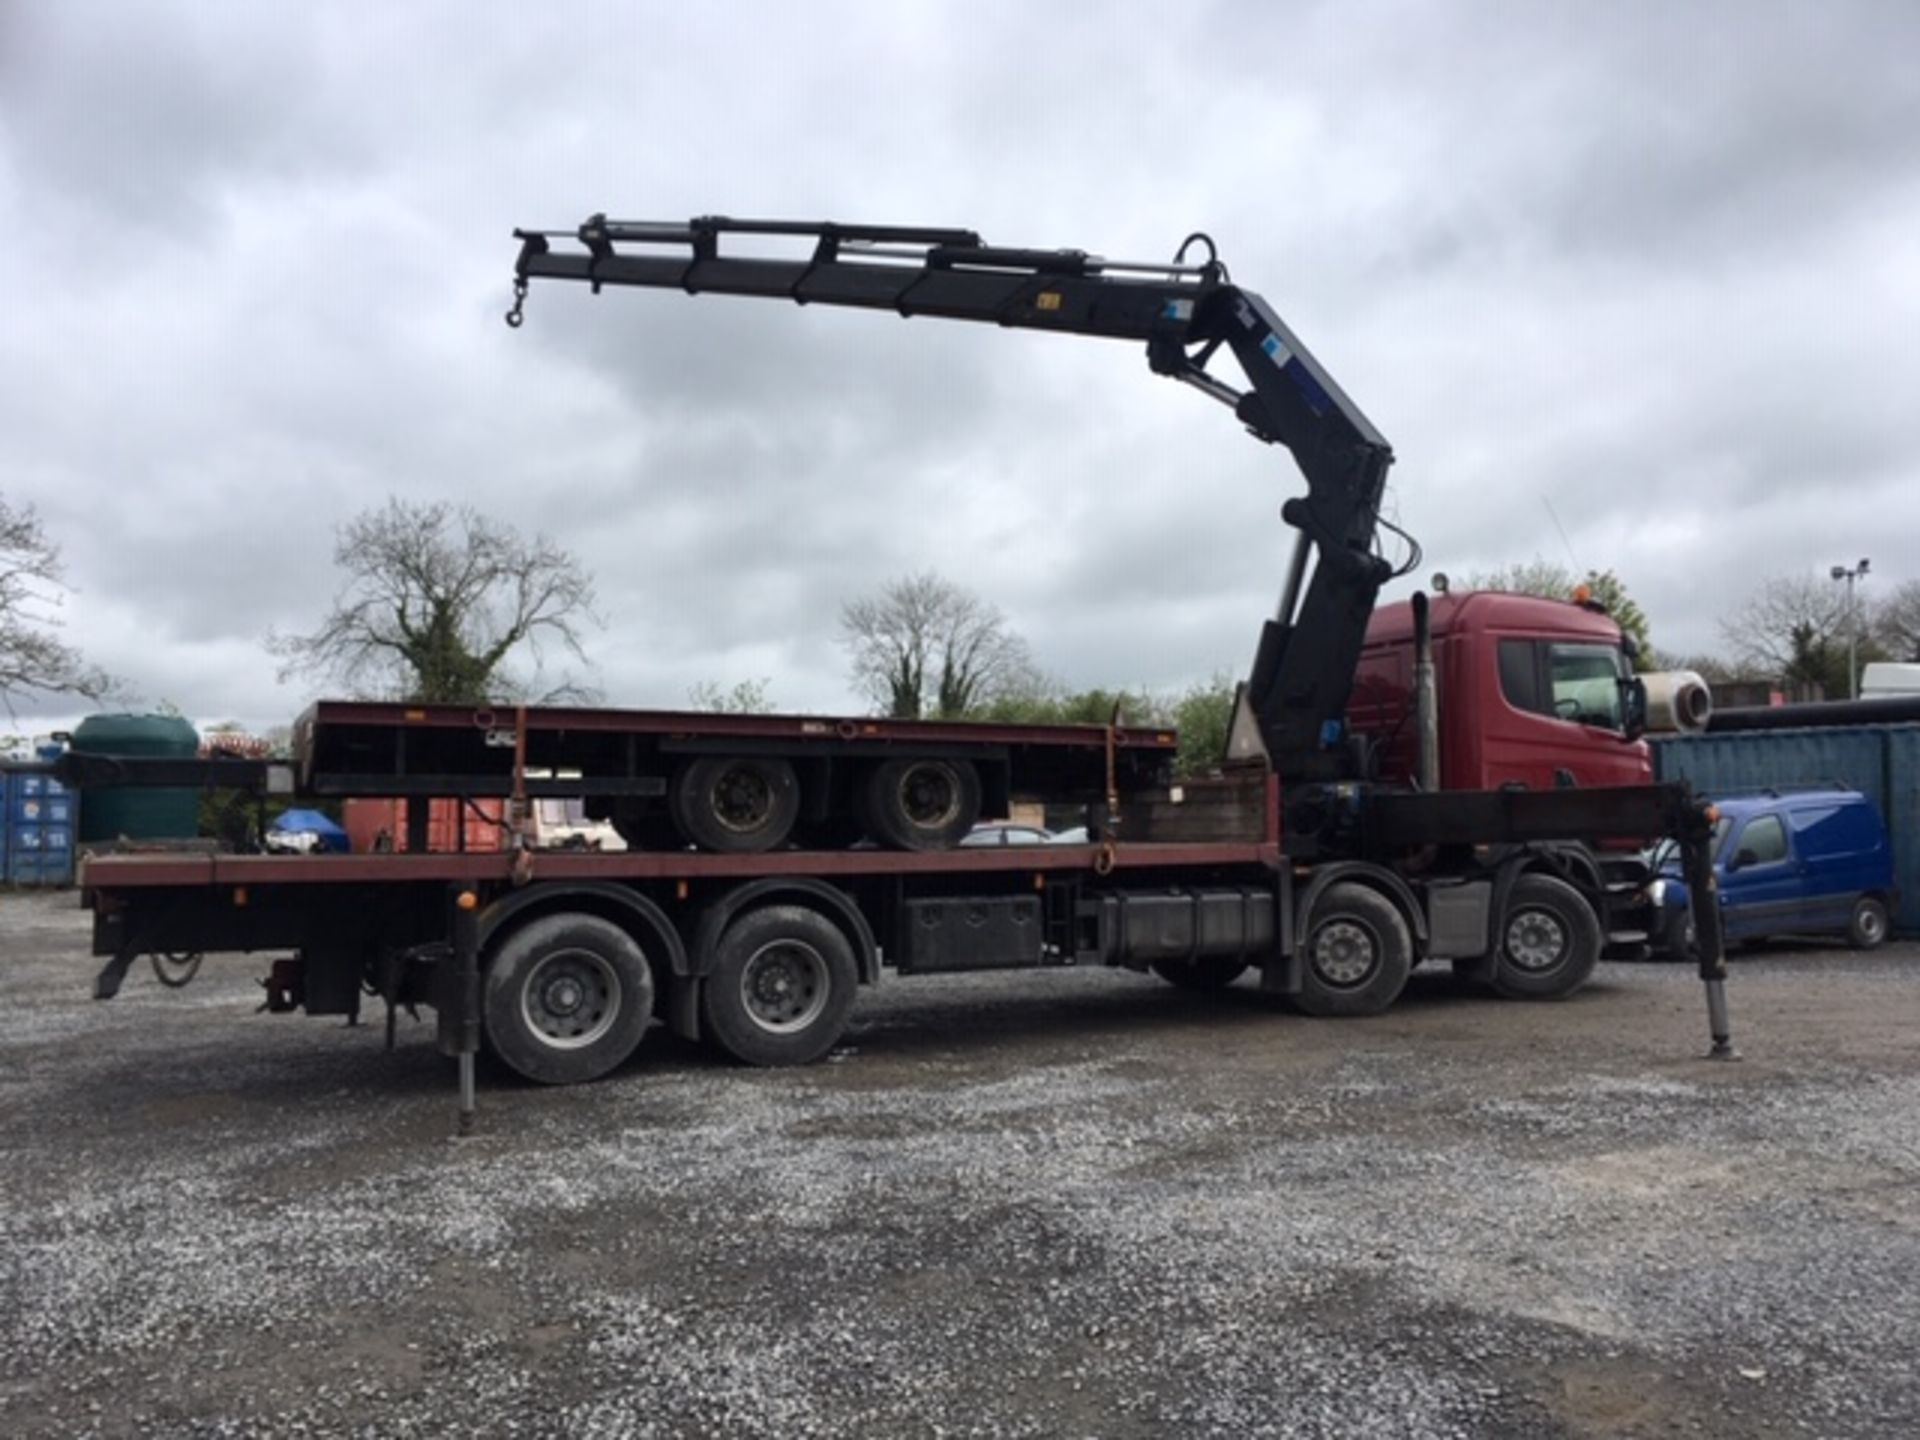 Lot 53 - 2007 SCANIA R380 8X4 SLEEPERCAB CRANE TRUCK FLATBED COUPLED WITH 20FT TWIN AXLE MC AULEY TRAILER